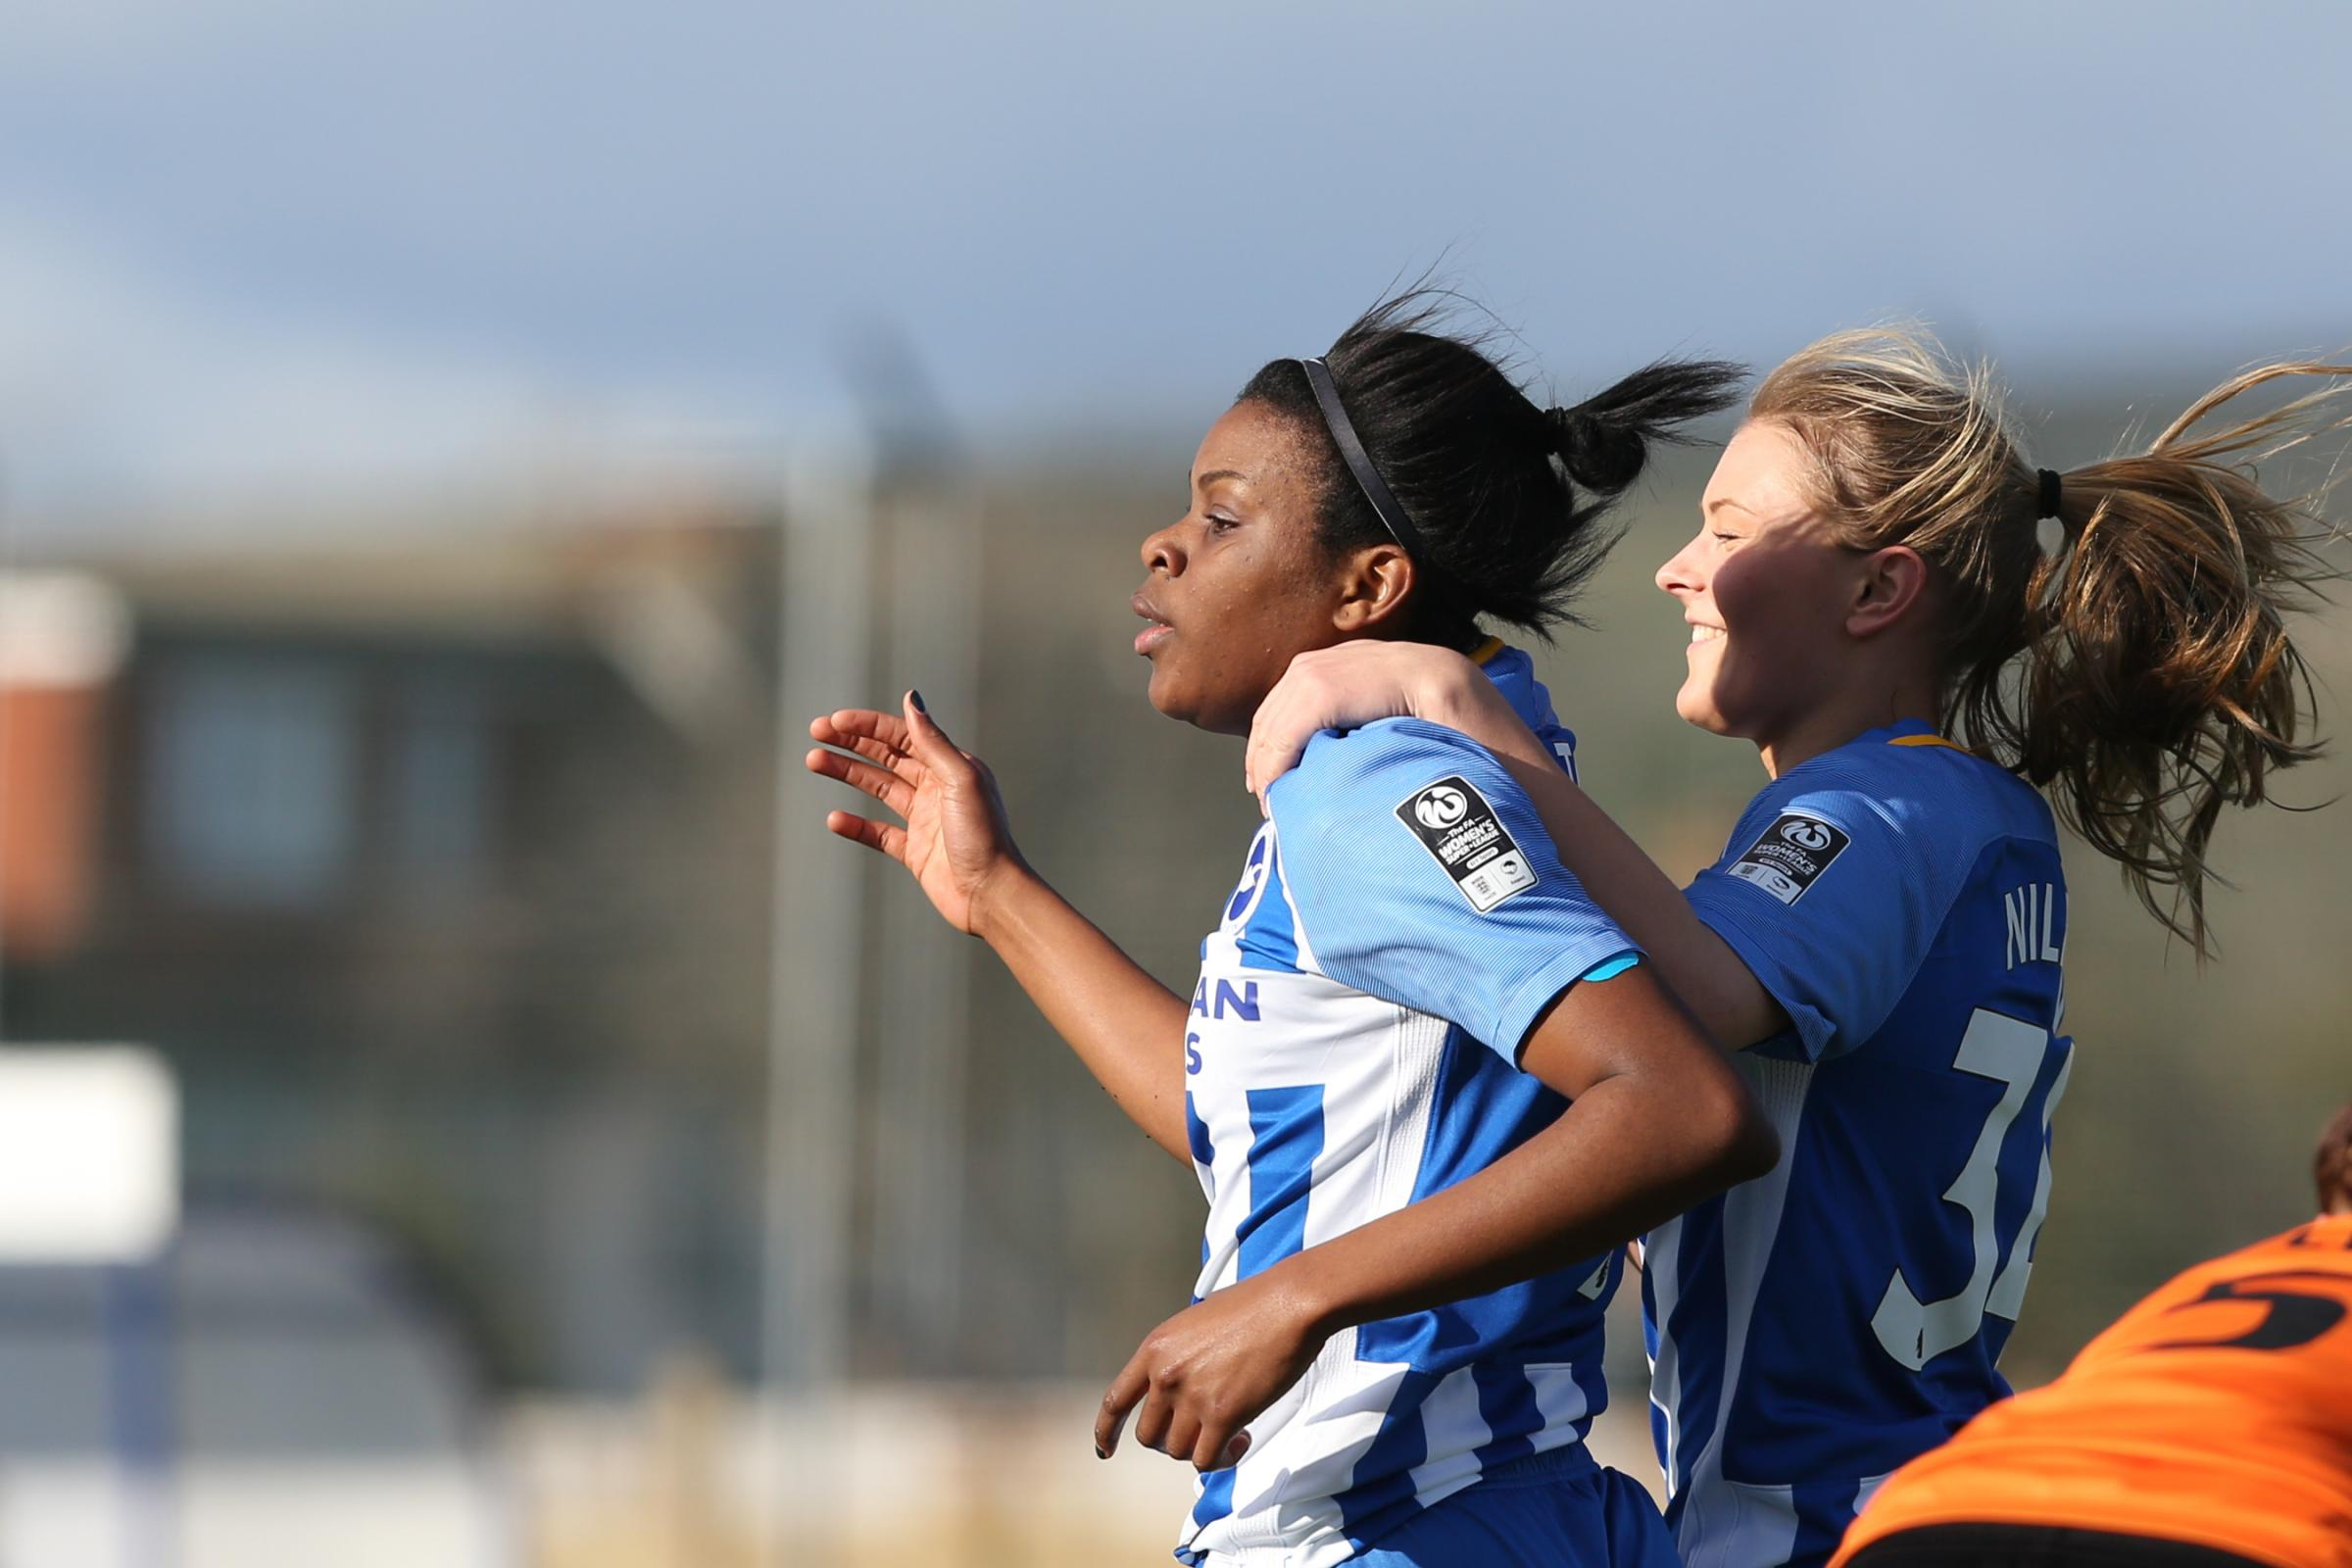 Ini Umotong celebrates a goal for Albion Women. Picture by Geoff Penn/BHAFC